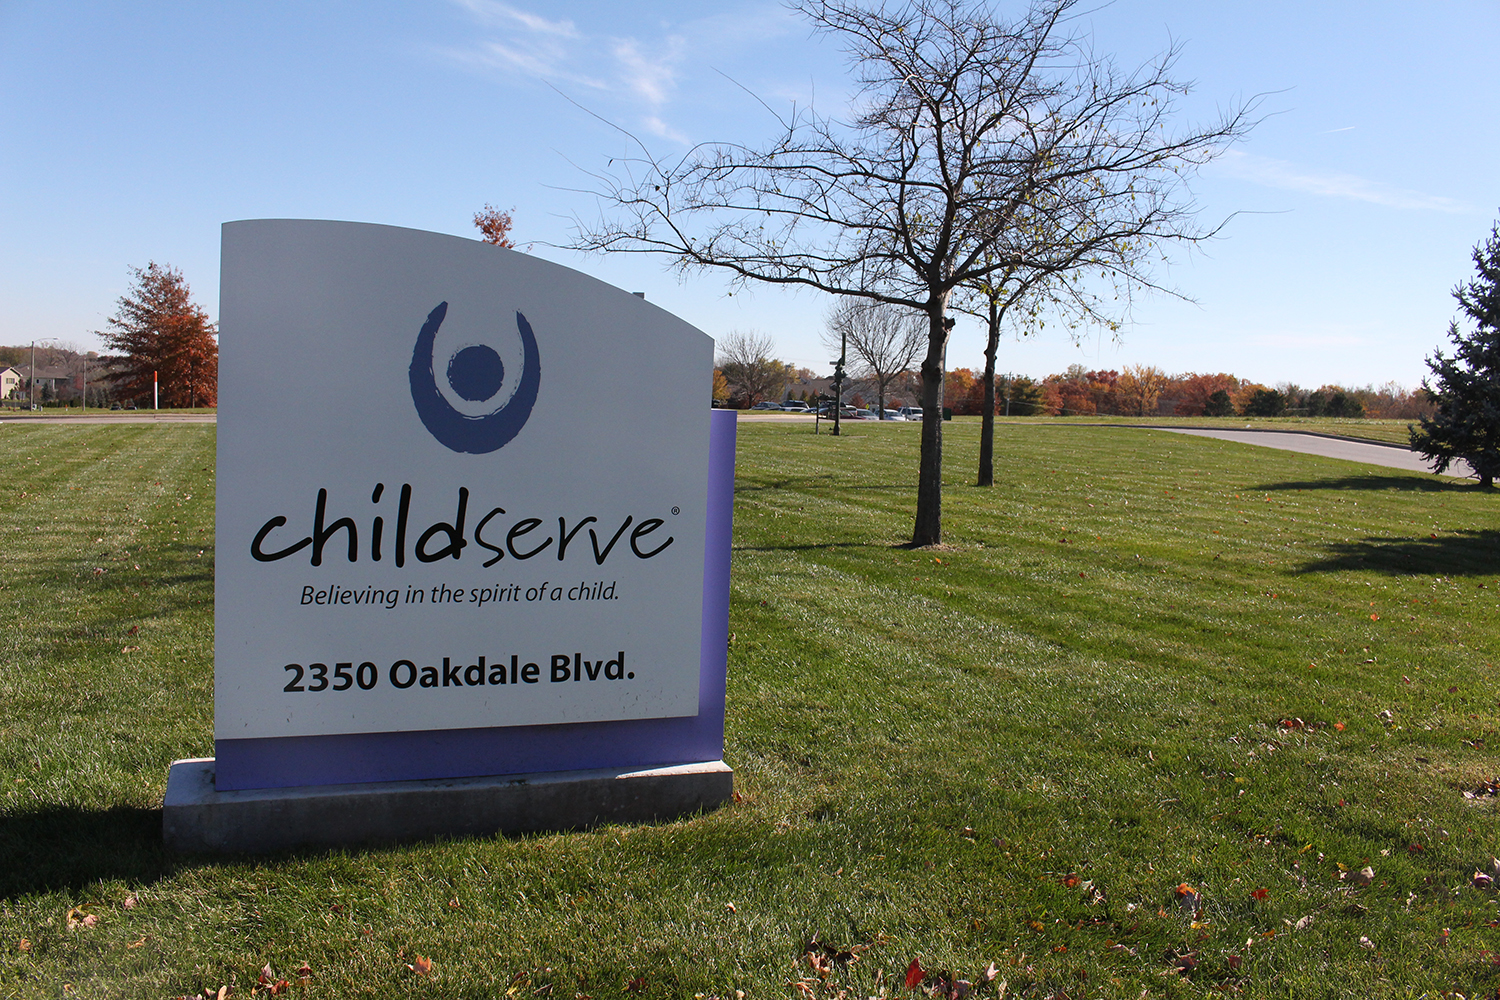 The ChildServe sign is seen in Coralville.